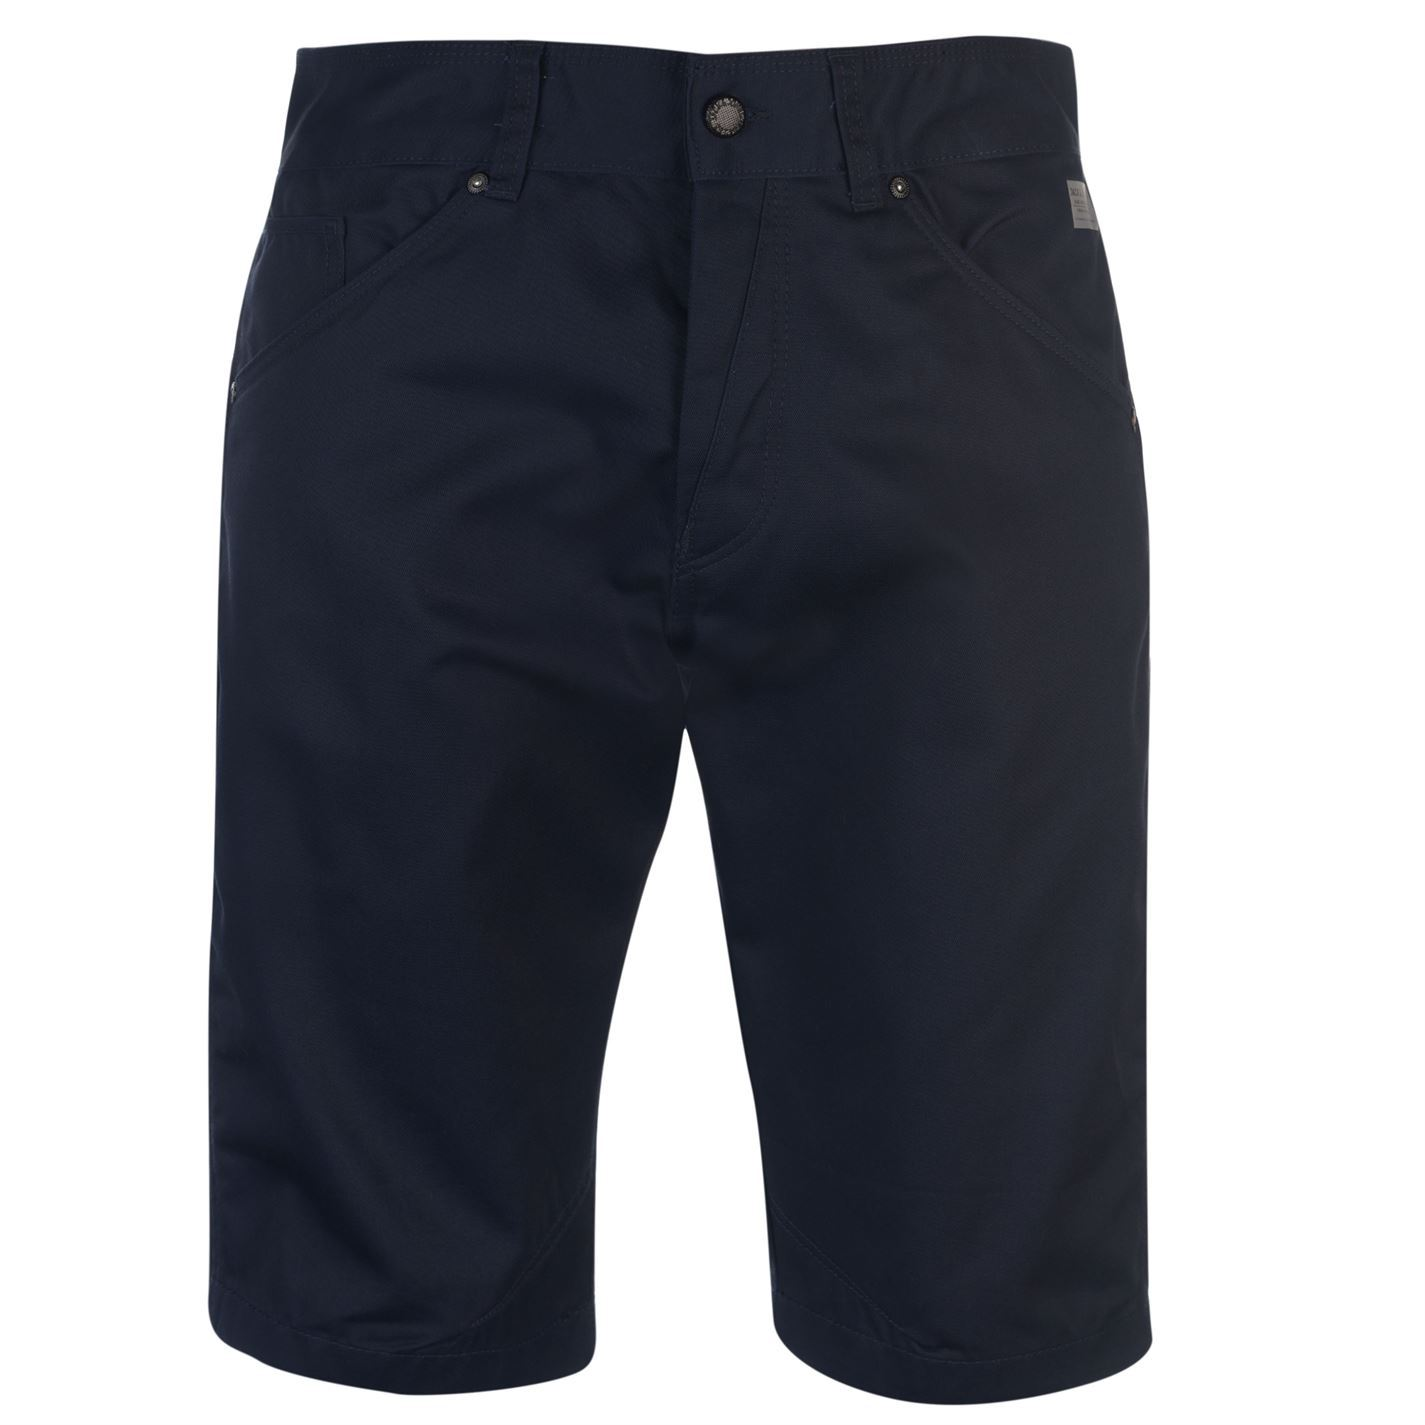 Jack and Jones Colins Chino Shorts Mens Gents Chinos Trousers Pants Bottoms